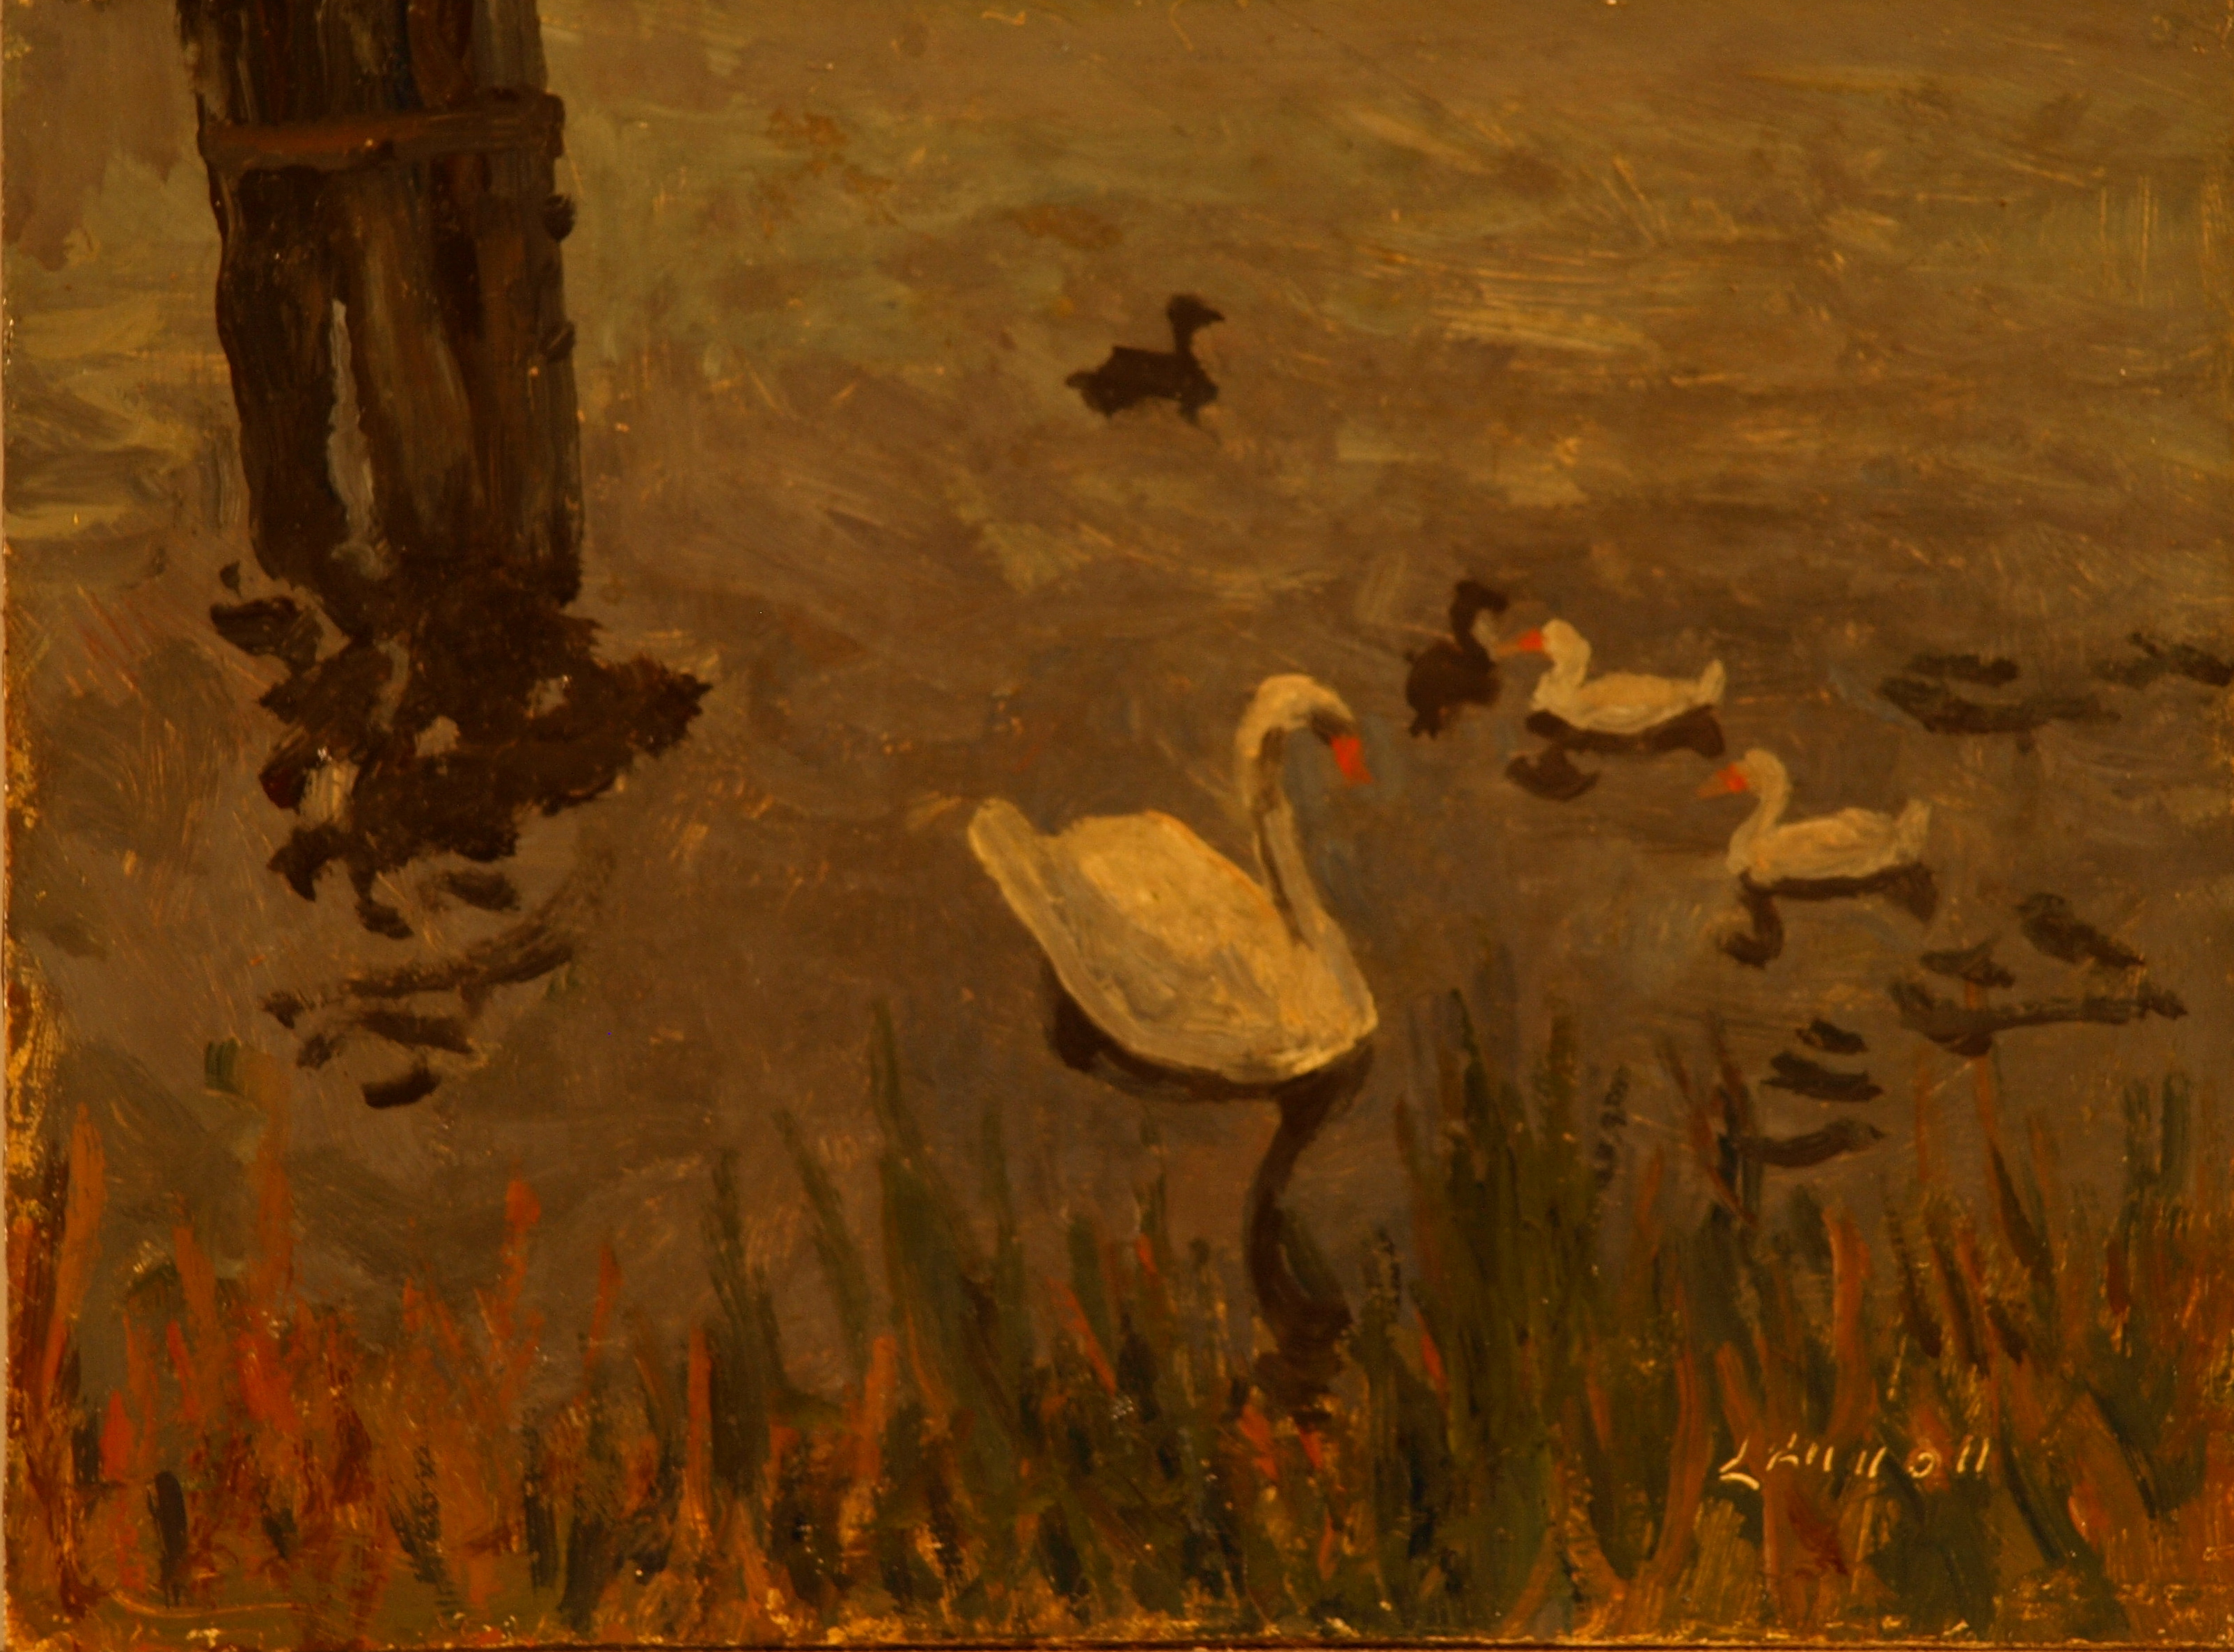 Swan and Ducks, Oil on Panel, 6 x 8 Inches, by Bernard Lennon, $175